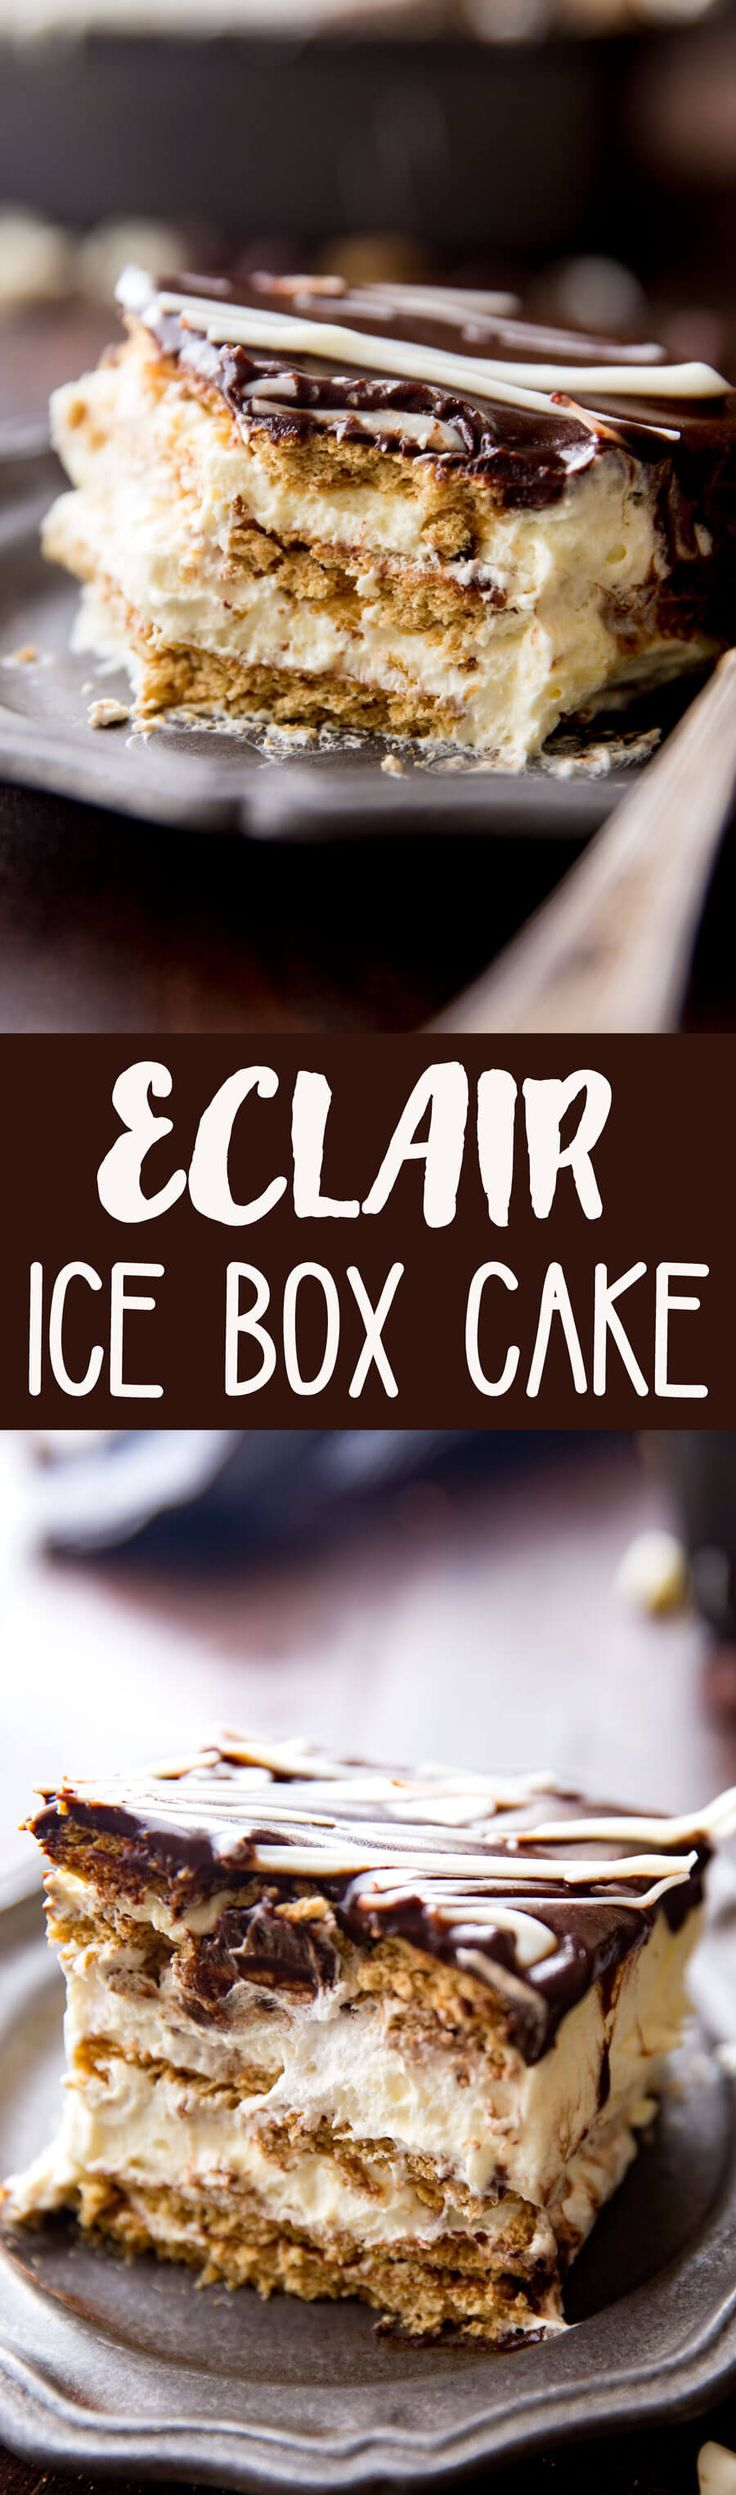 Simple Eclair Ice Box Cake: No baking, no fuss, this easy ice box cake is absolutely delicious and just so fun. Rich chocolate topping, fun vanilla custardy center, and graham crackers. It tastes like an eclair in cake form! And is way easier than baking eclairs. You guys I am always looking for super duper...Read More »